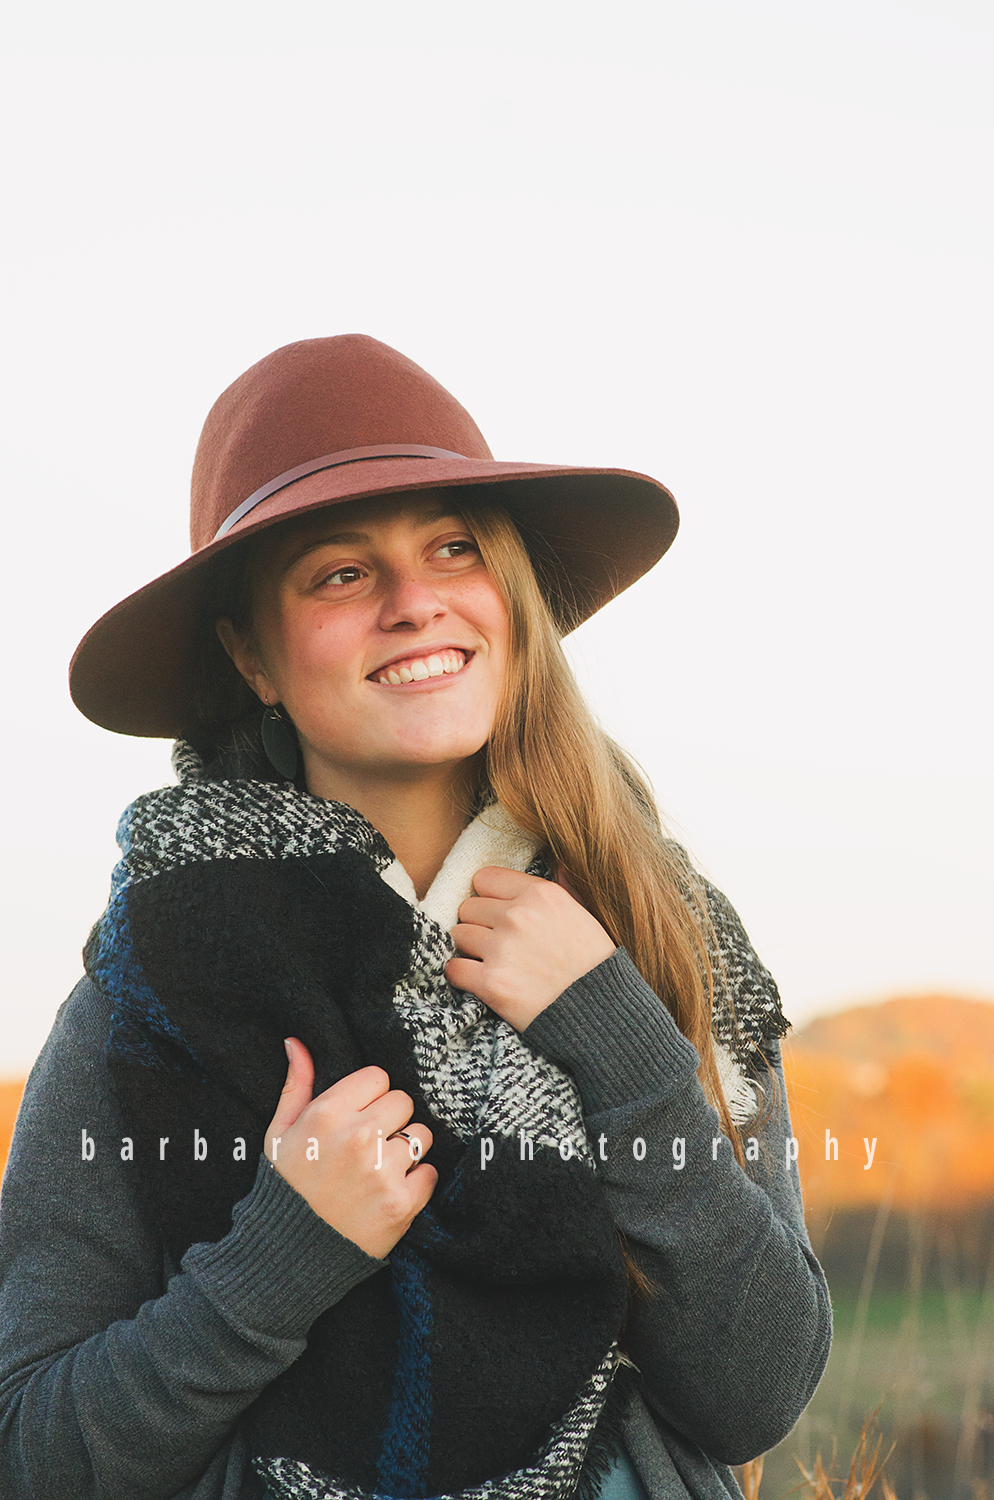 bjp-senior-pictures-portraits-class-of-2018-dover-oh-fall-autumn-woods-graduate-abby18.png